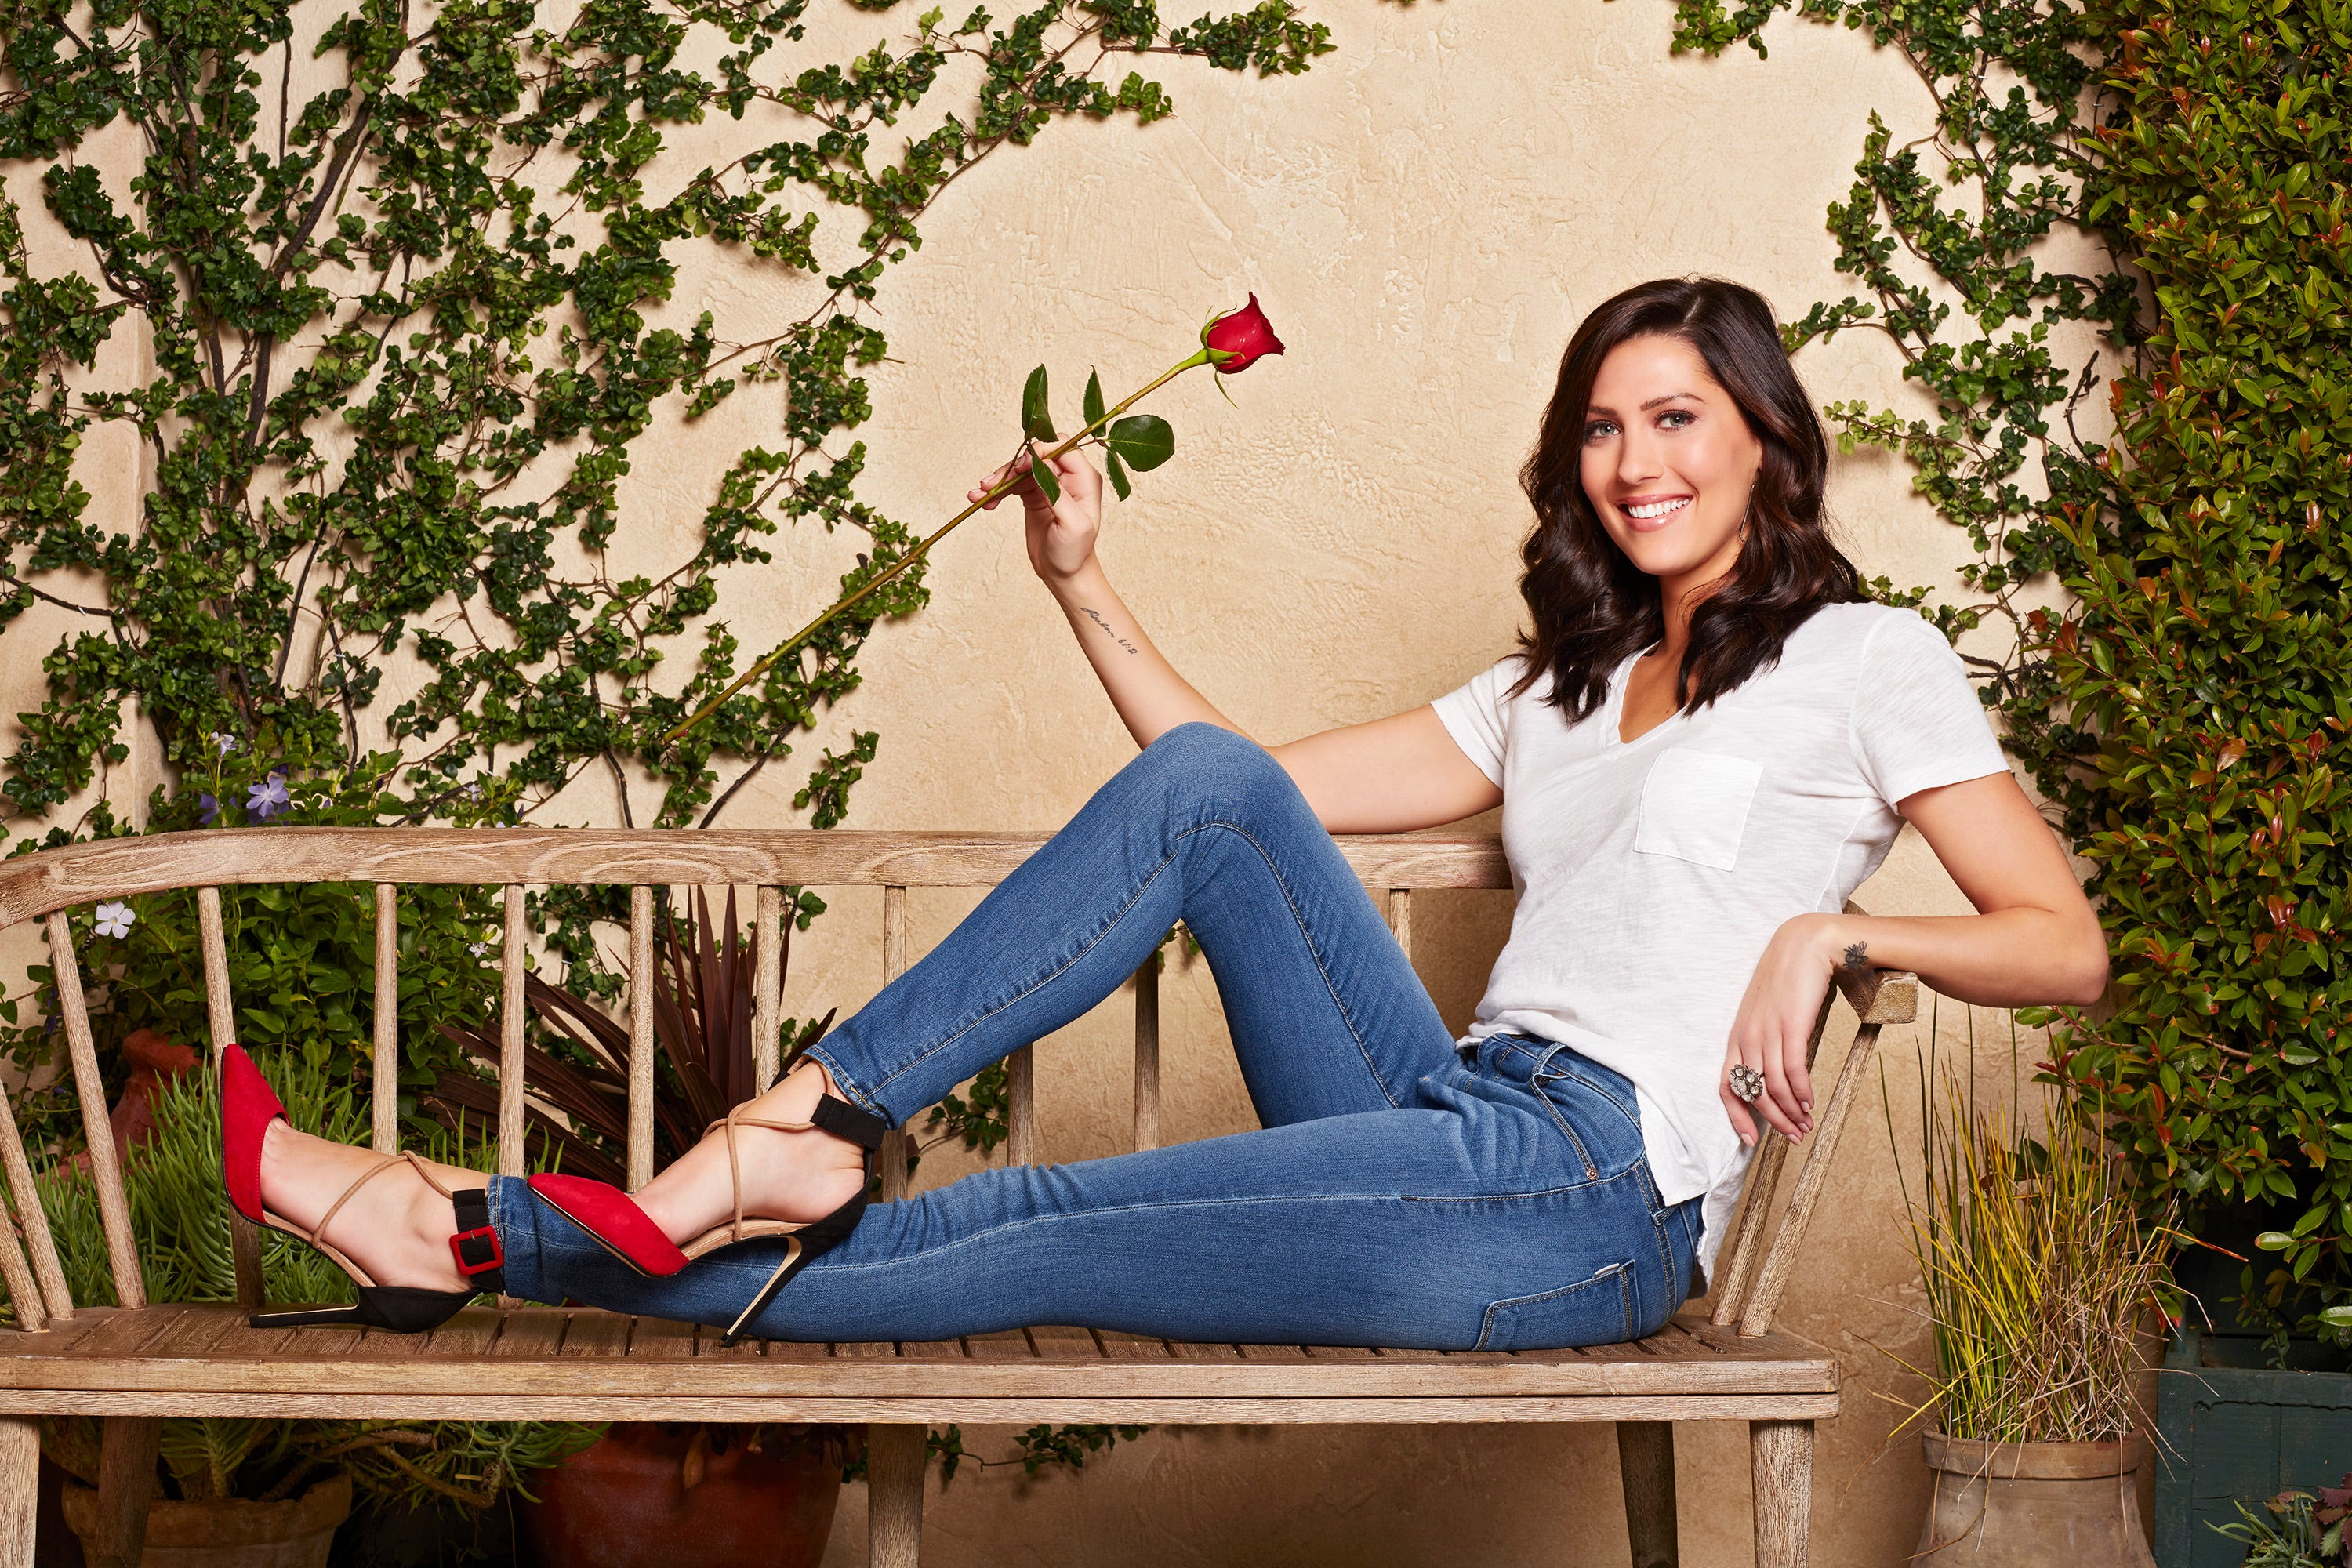 'Bachelorette' finale: Becca Kufrin's new fiancé is ...